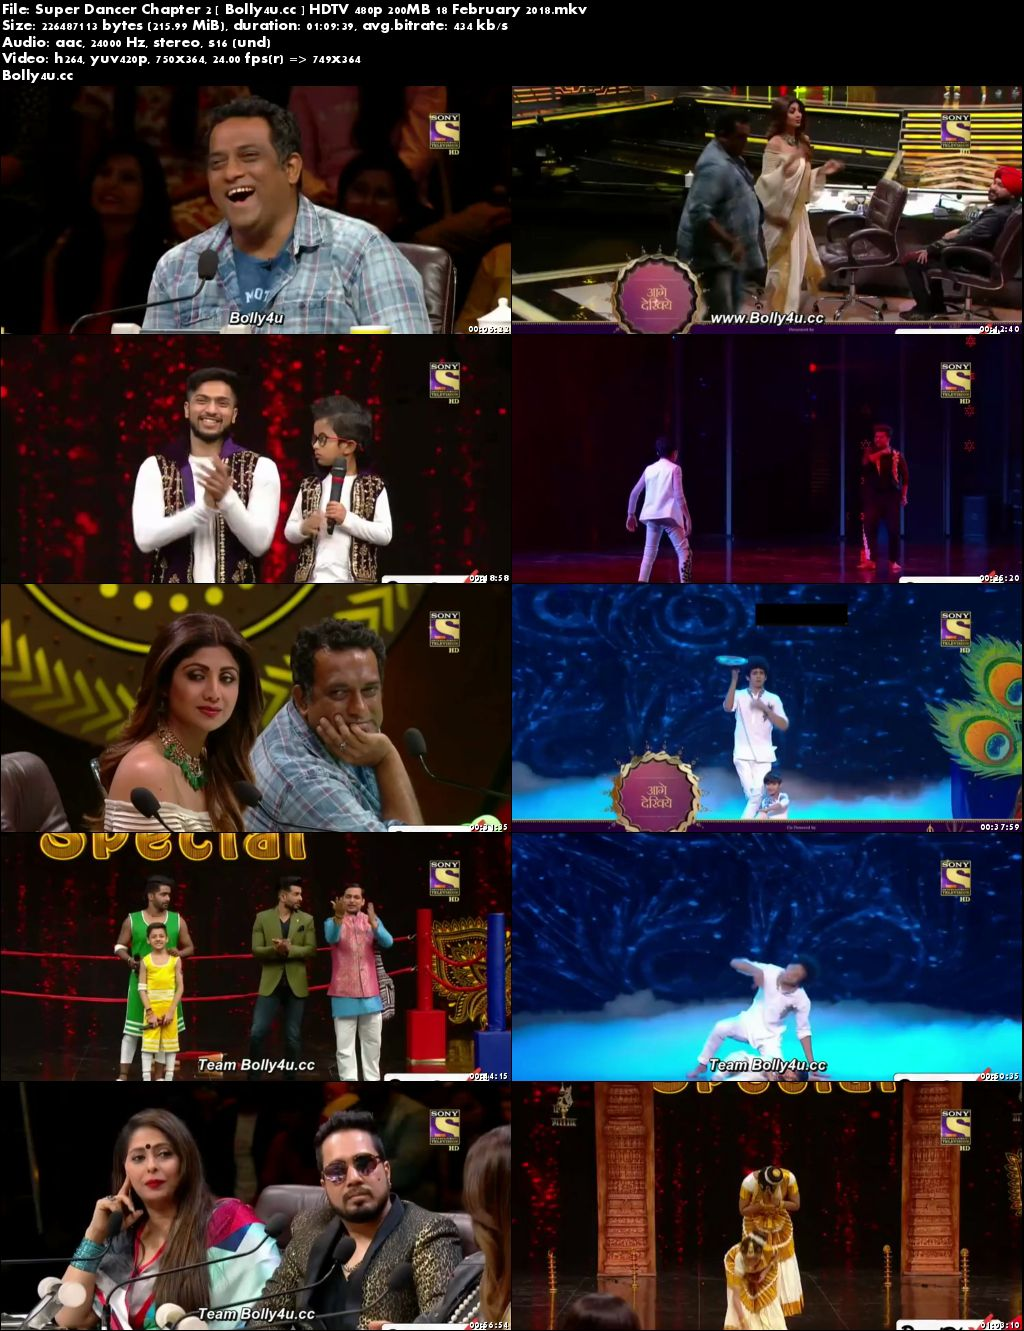 Super Dancer Chapter 2 HDTV 480p 200MB 18 February 2018 Download